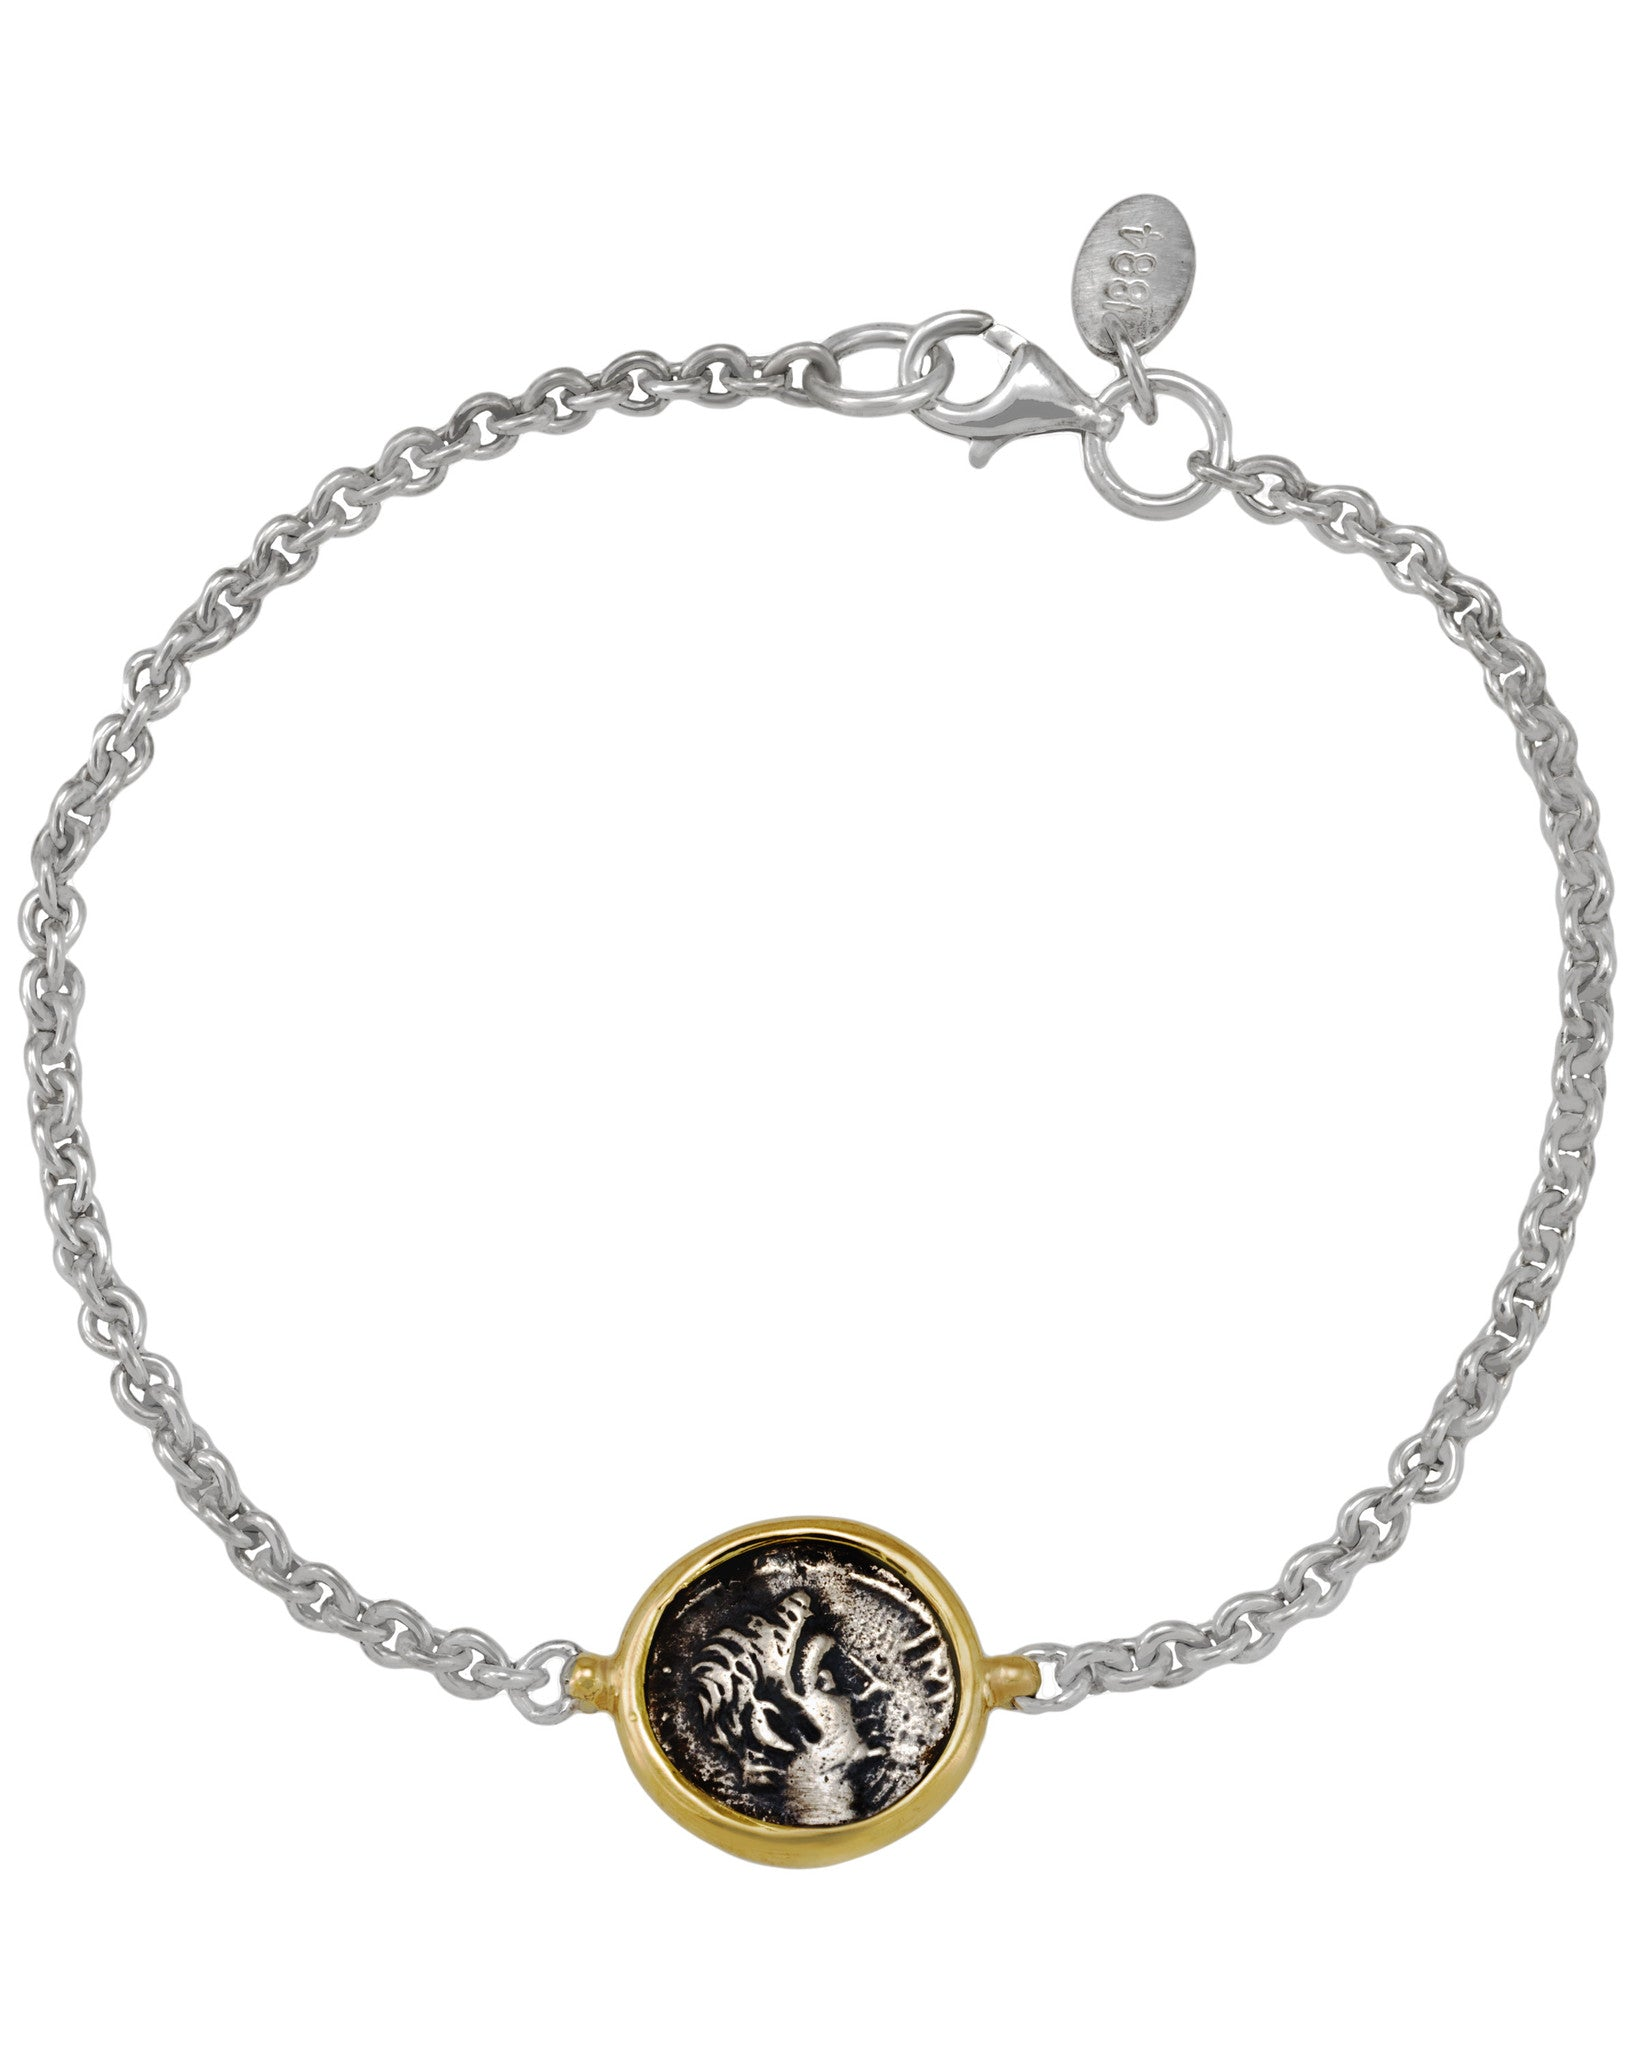 Appia 18K Yellow Gold and Sterling Silver Station Bracelet w/1 Antique Ottaviano Coin